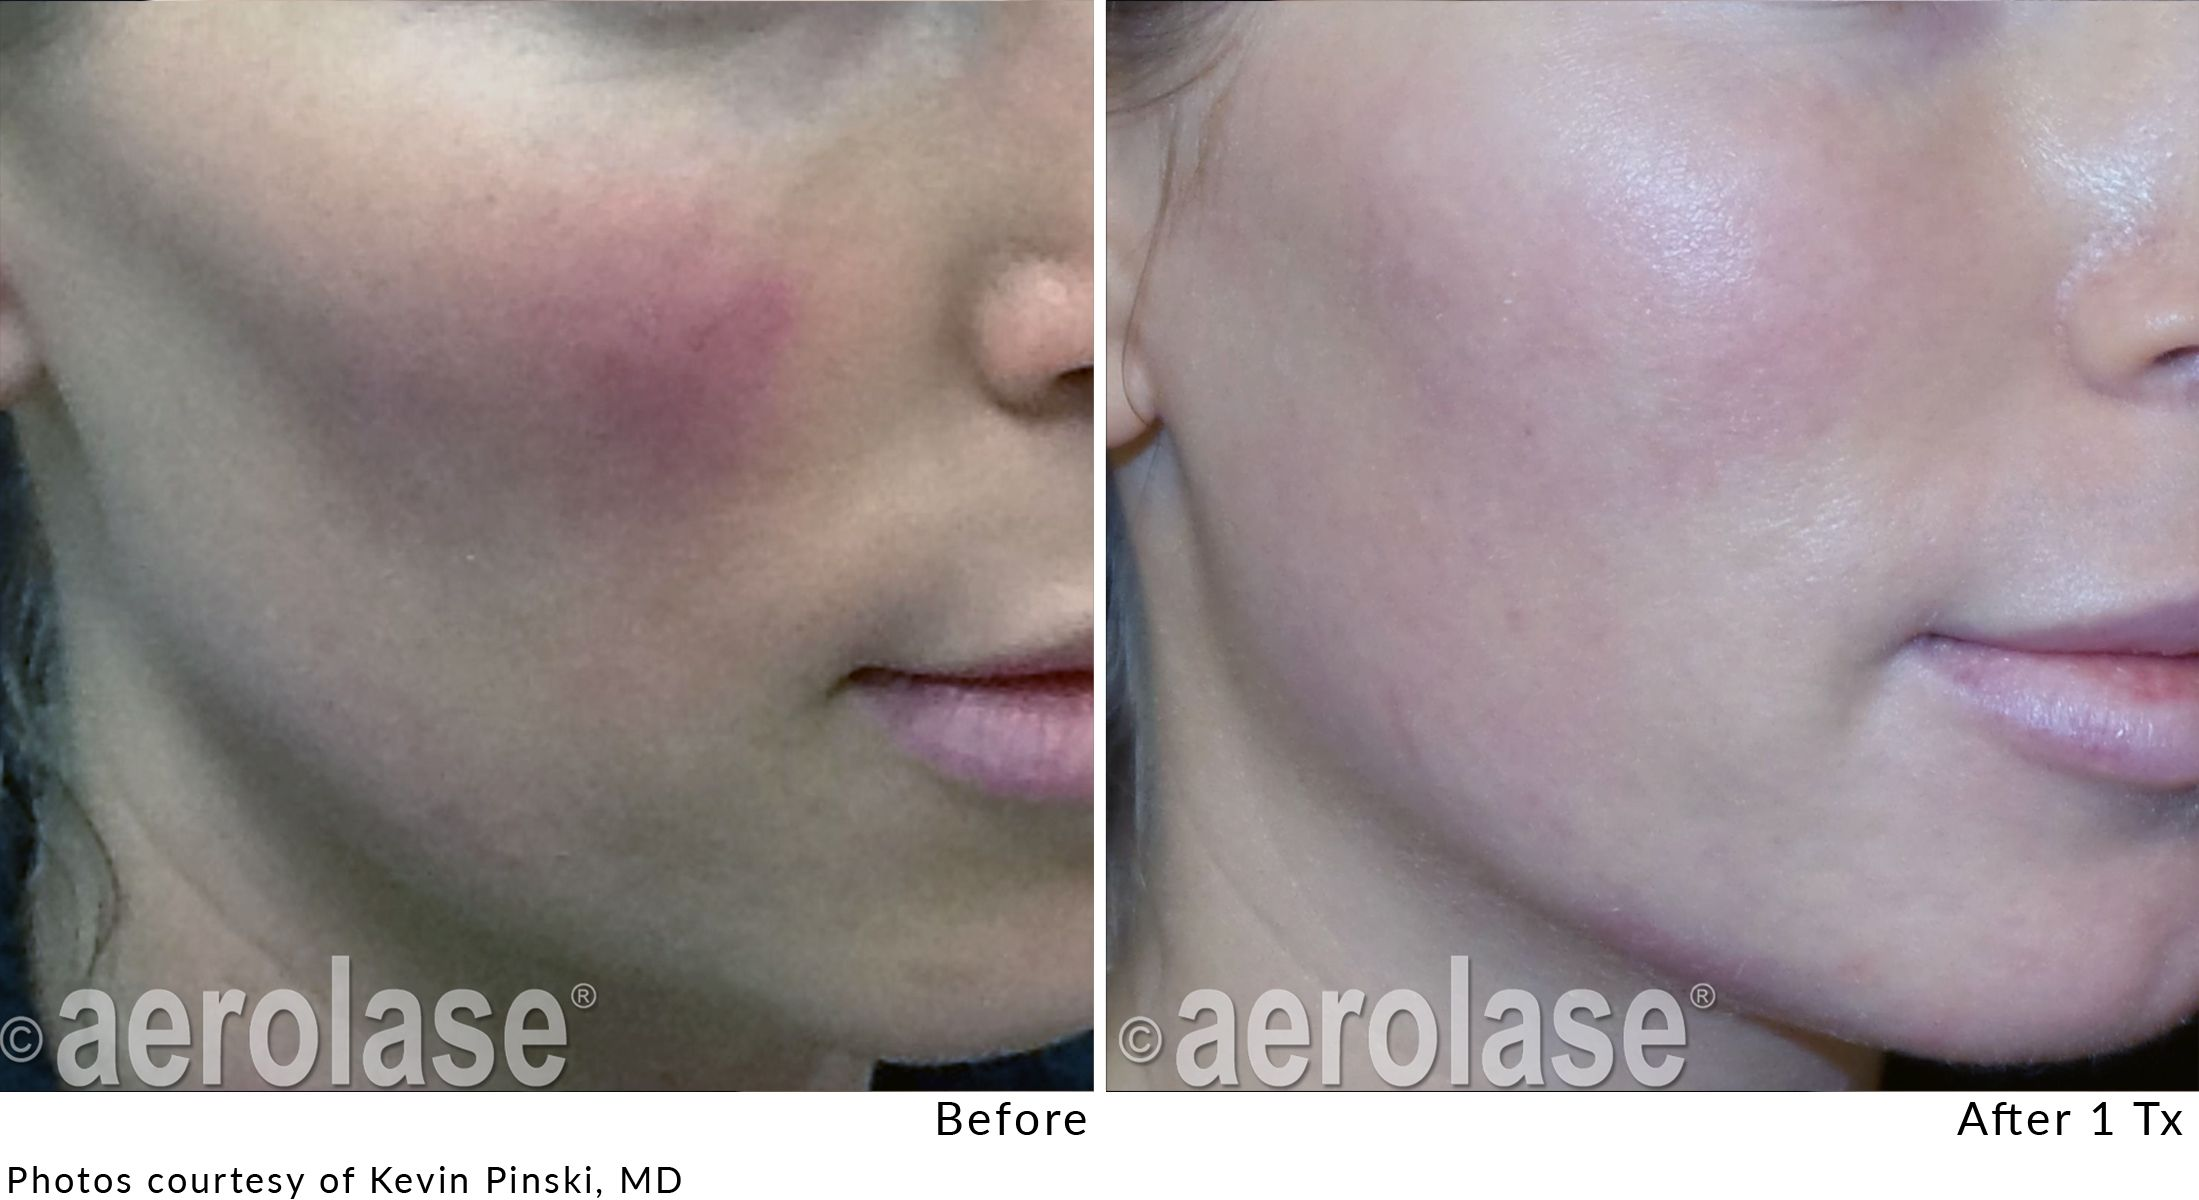 Treating Rosacea After 2 Aggressive Treatments Using Aerolase